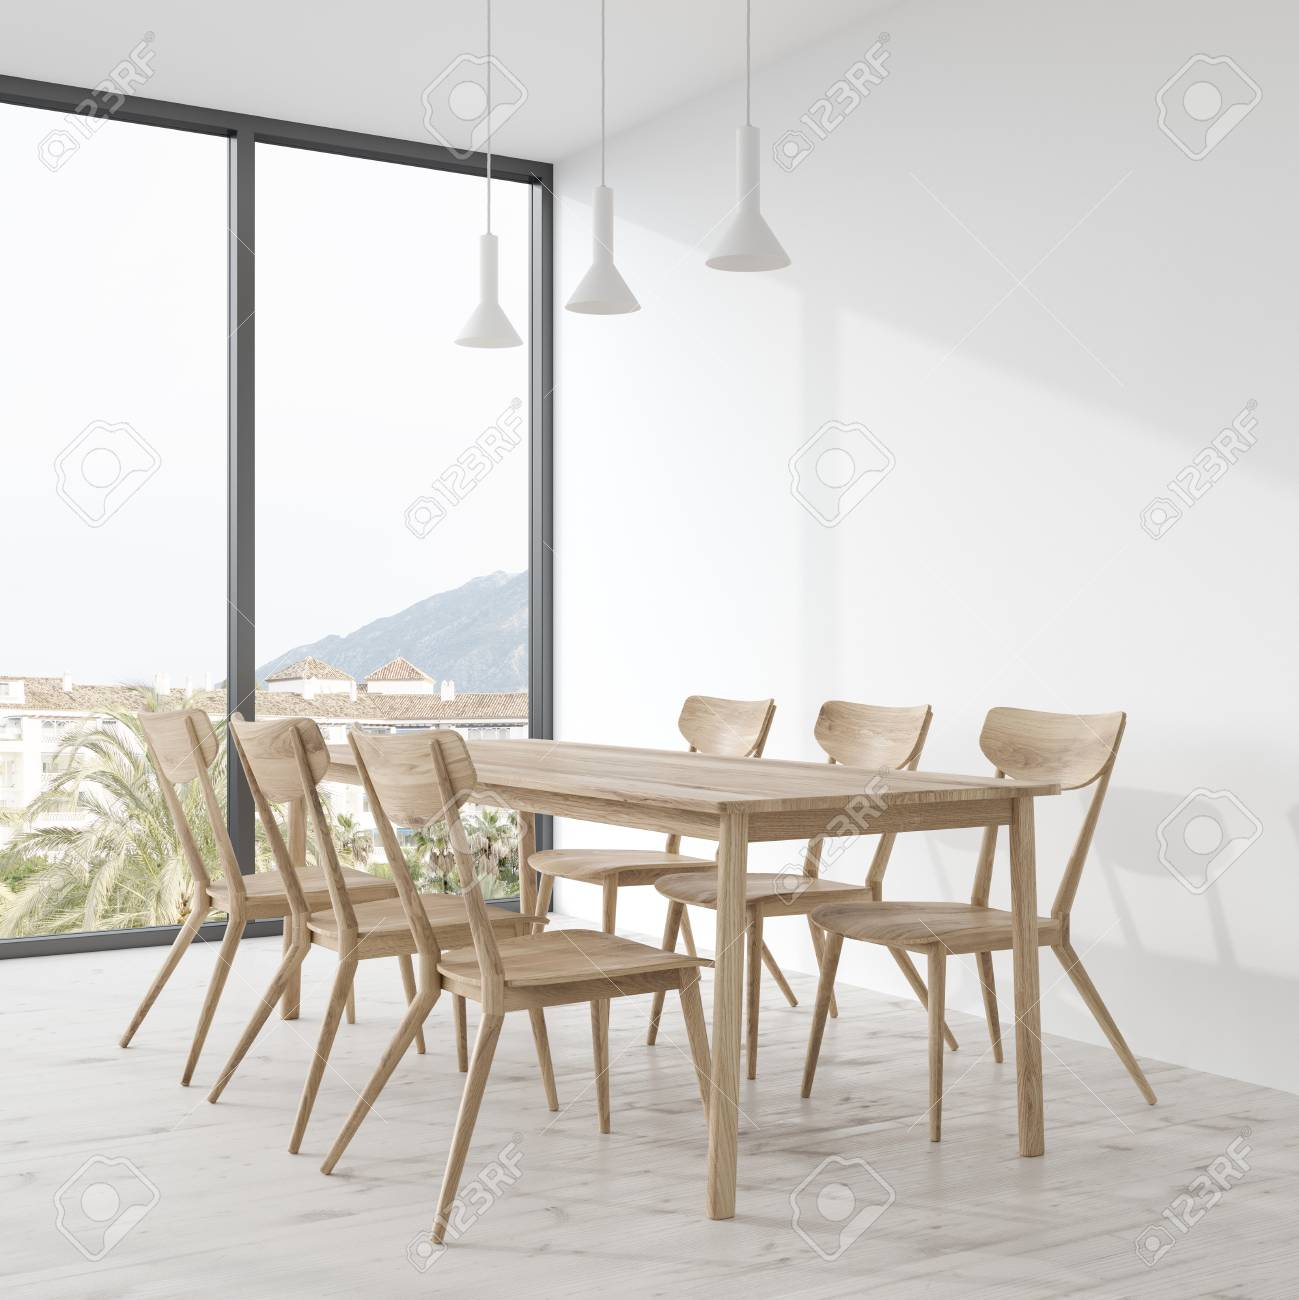 Long wooden dining room table with wooden chairs standing in..